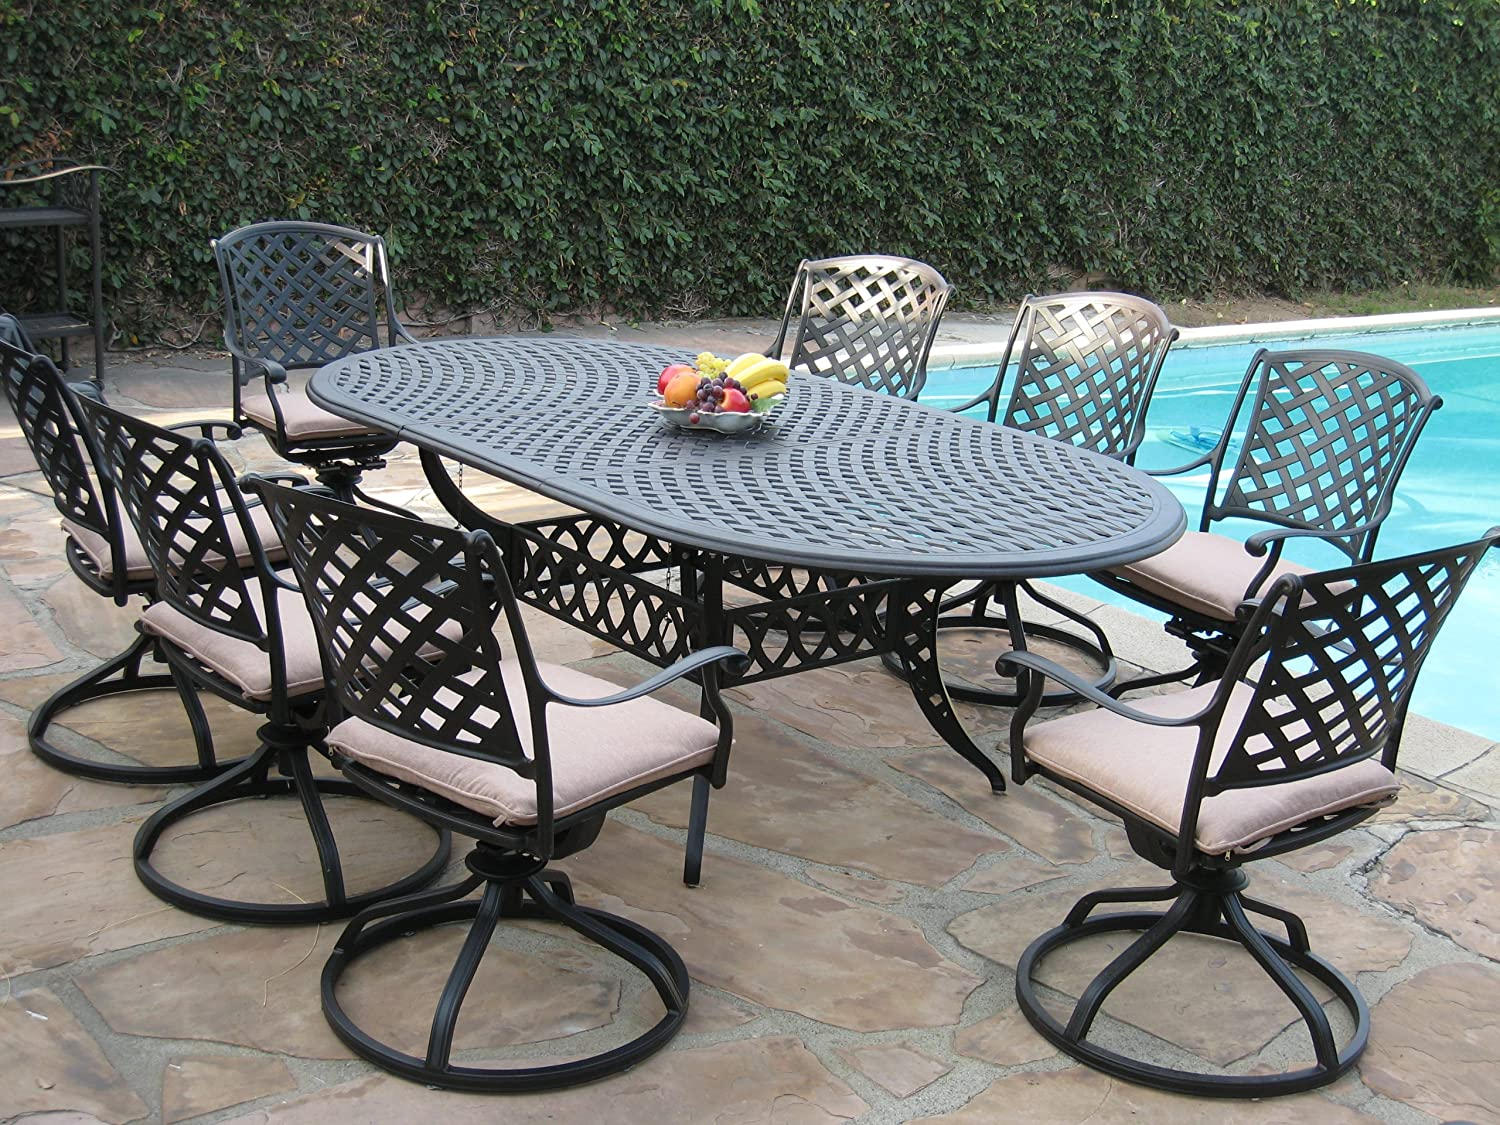 Cast Aluminum Outdoor Patio Furniture 9 Piece Expandable Dining Set DS-09KLSS260180T All Swivel Rockers CBM1290